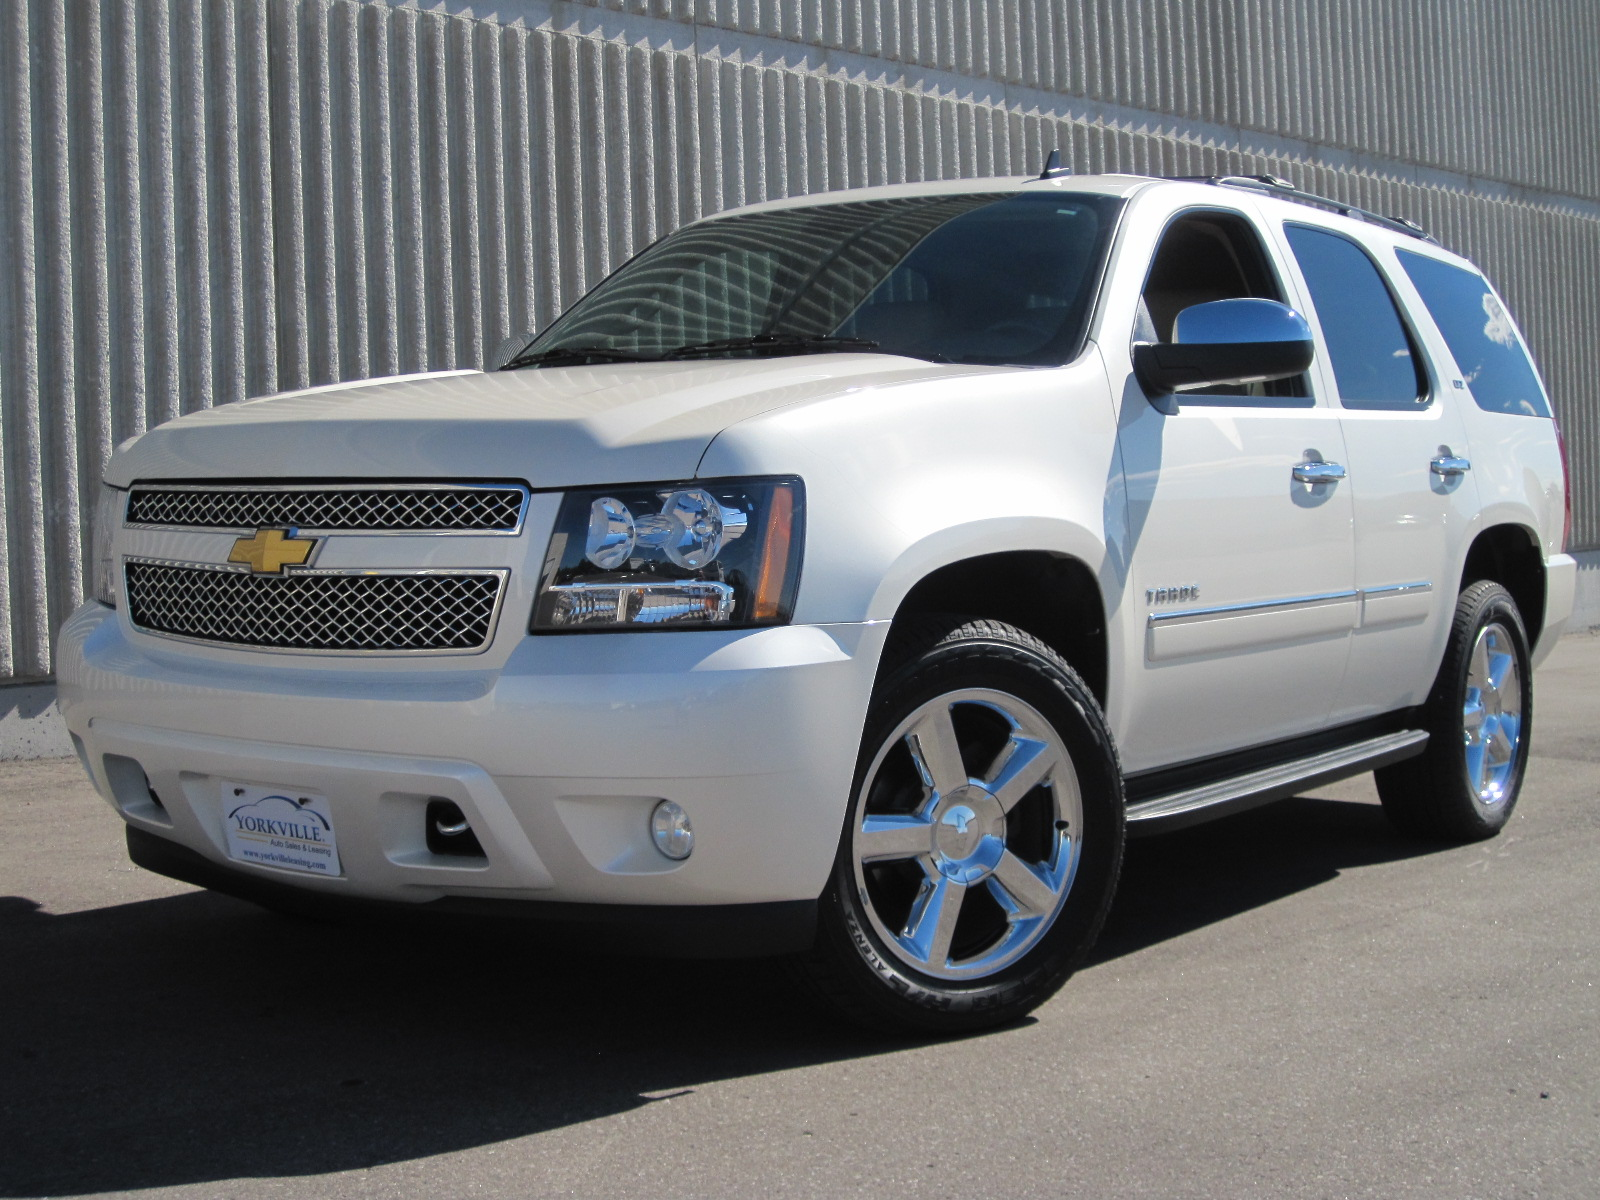 2014 Chevy Tahoe >> 09 chevy tahoe ltz Quotes